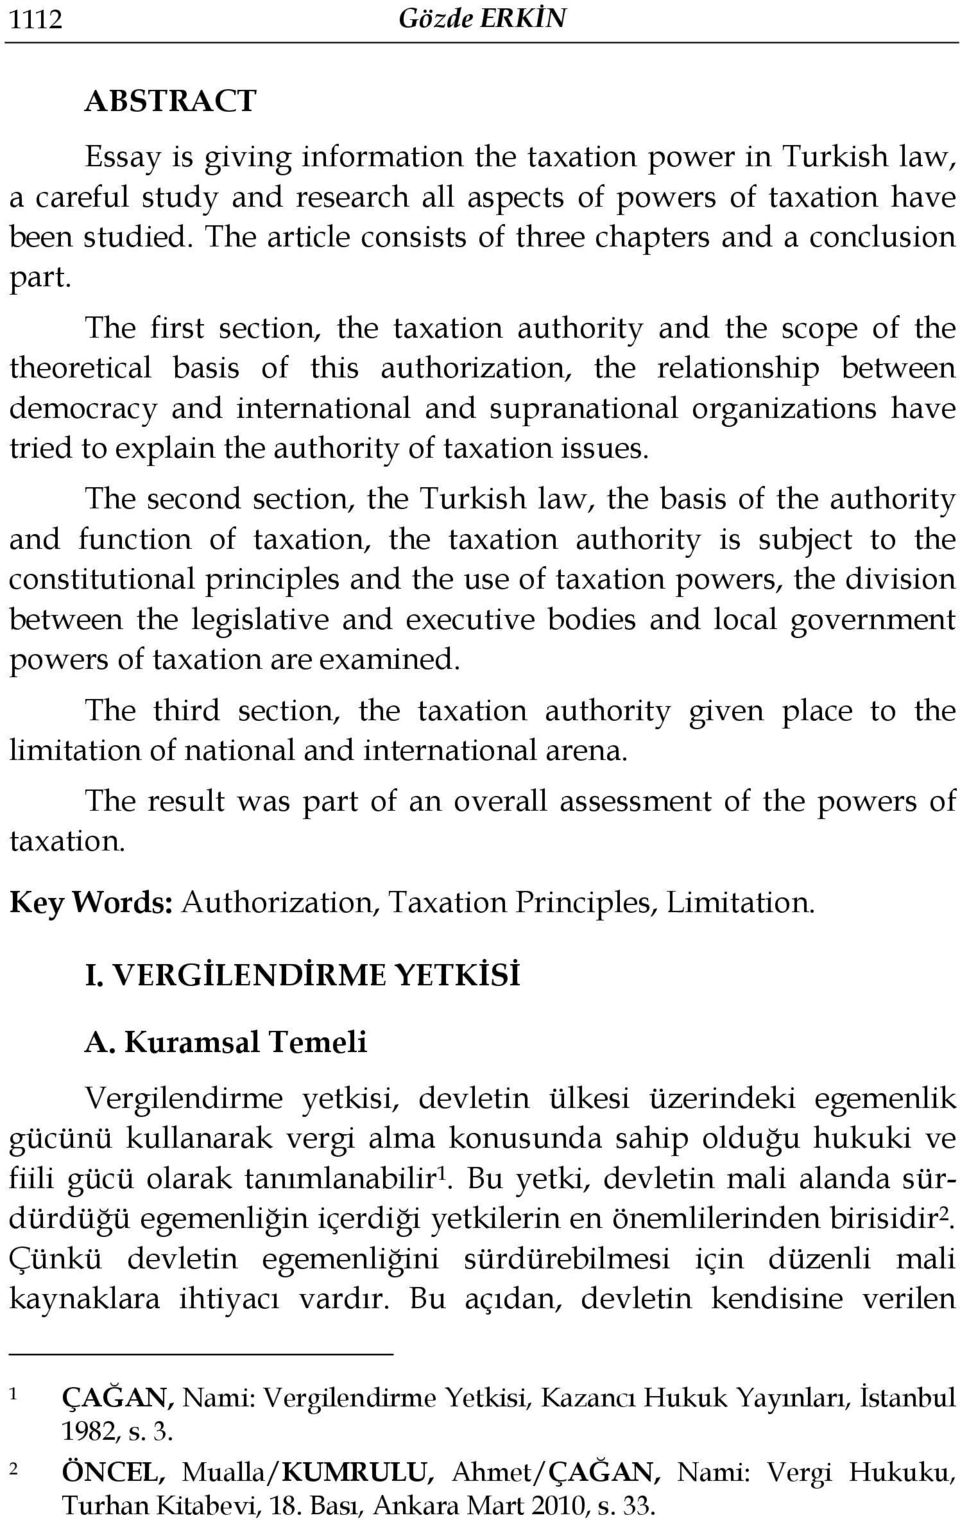 The first section, the taxation authority and the scope of the theoretical basis of this authorization, the relationship between democracy and international and supranational organizations have tried